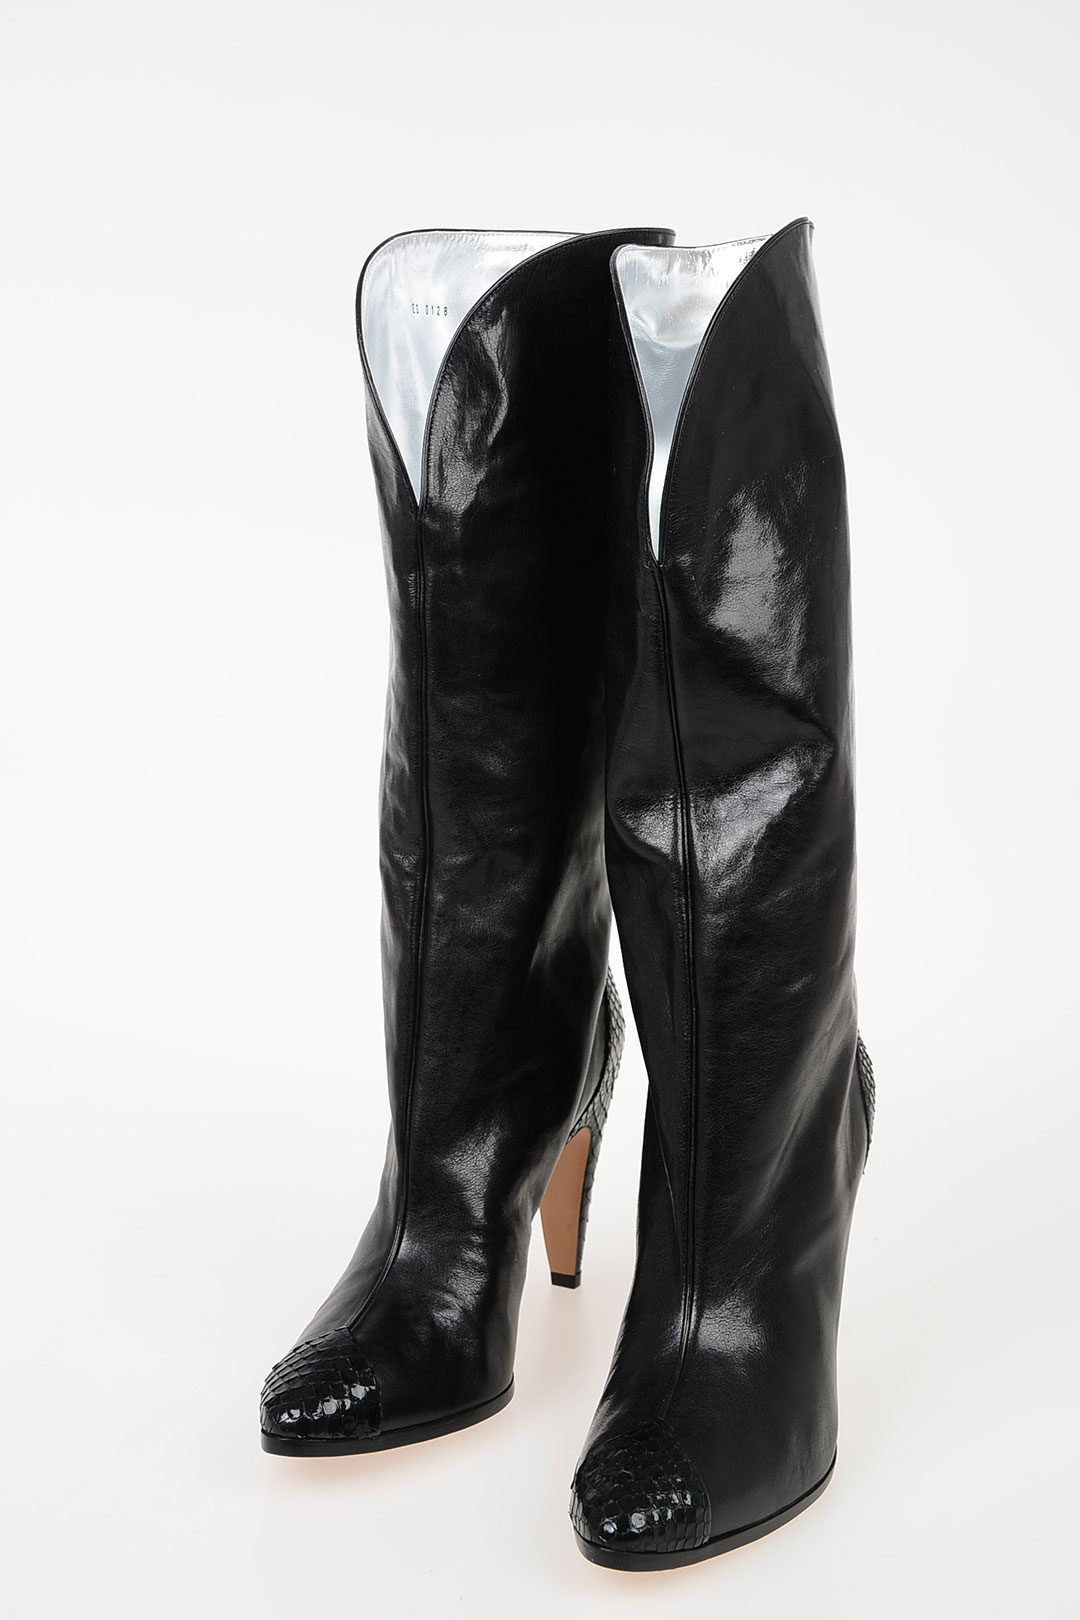 11cm Leather Boots with Python Details